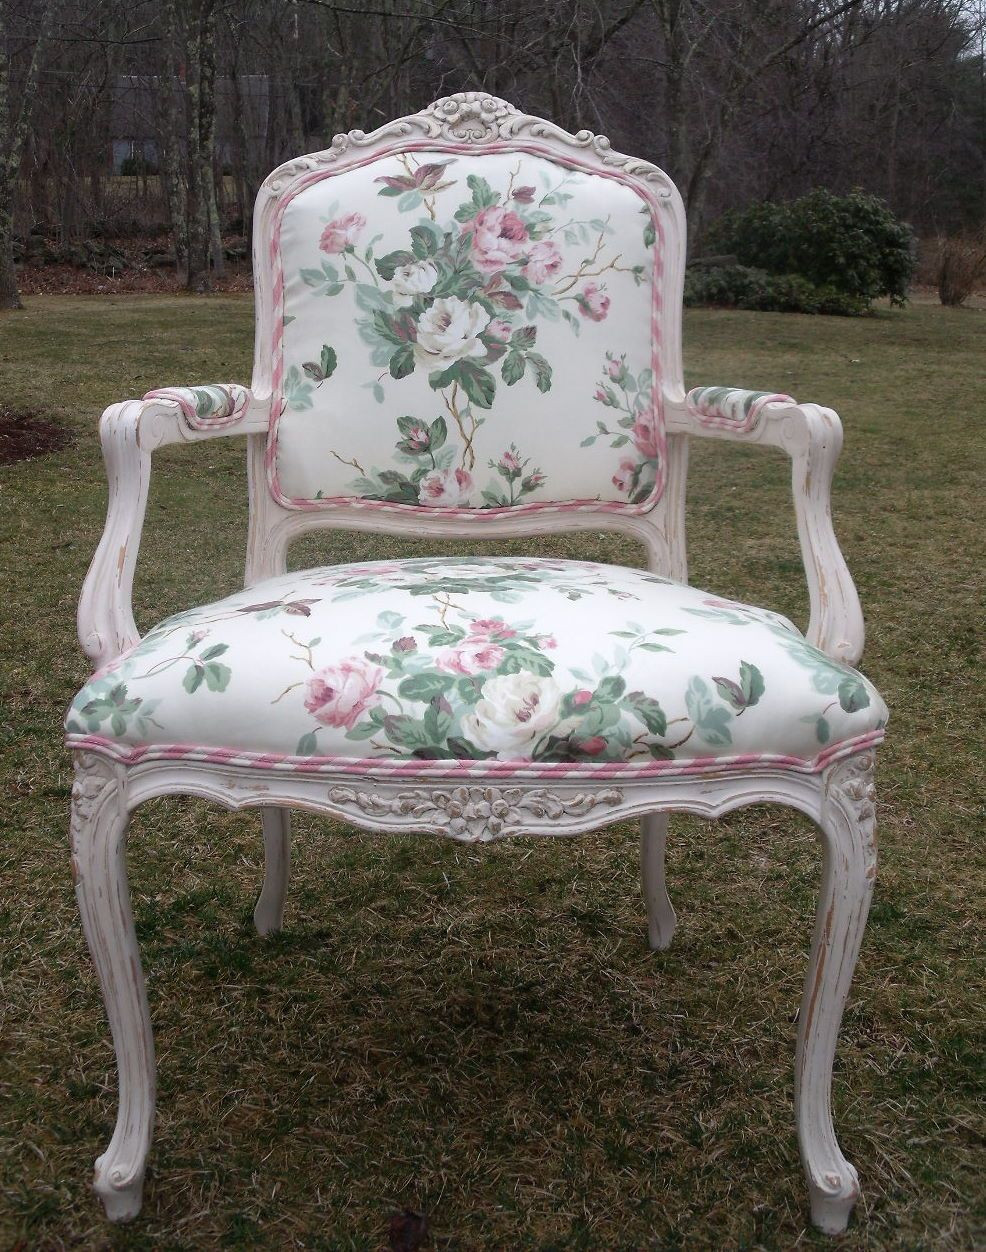 Best ideas about Shabby Chic Chairs . Save or Pin Shabby chic bergere chair in pink chintz and chalk paint Now.